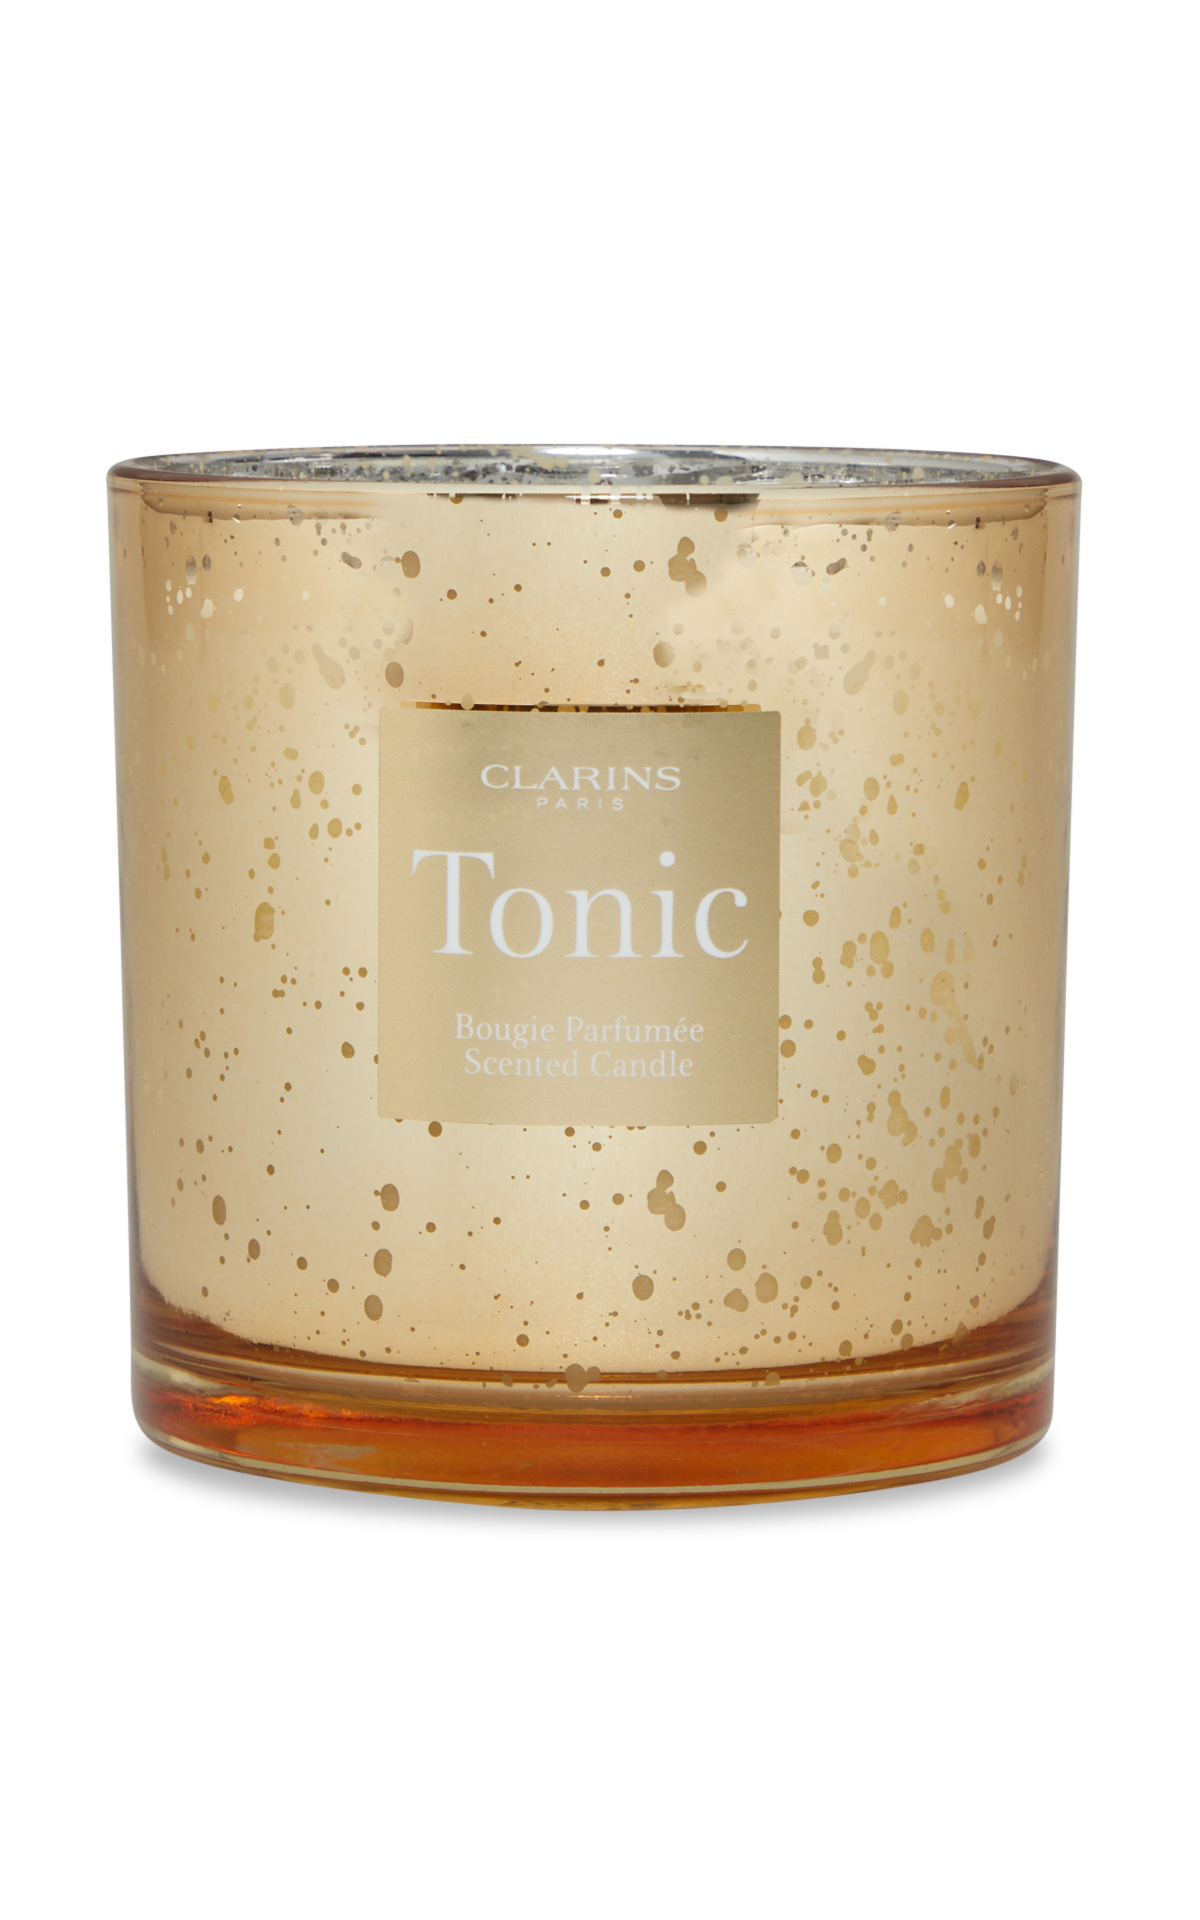 Clarins Tonic candle*